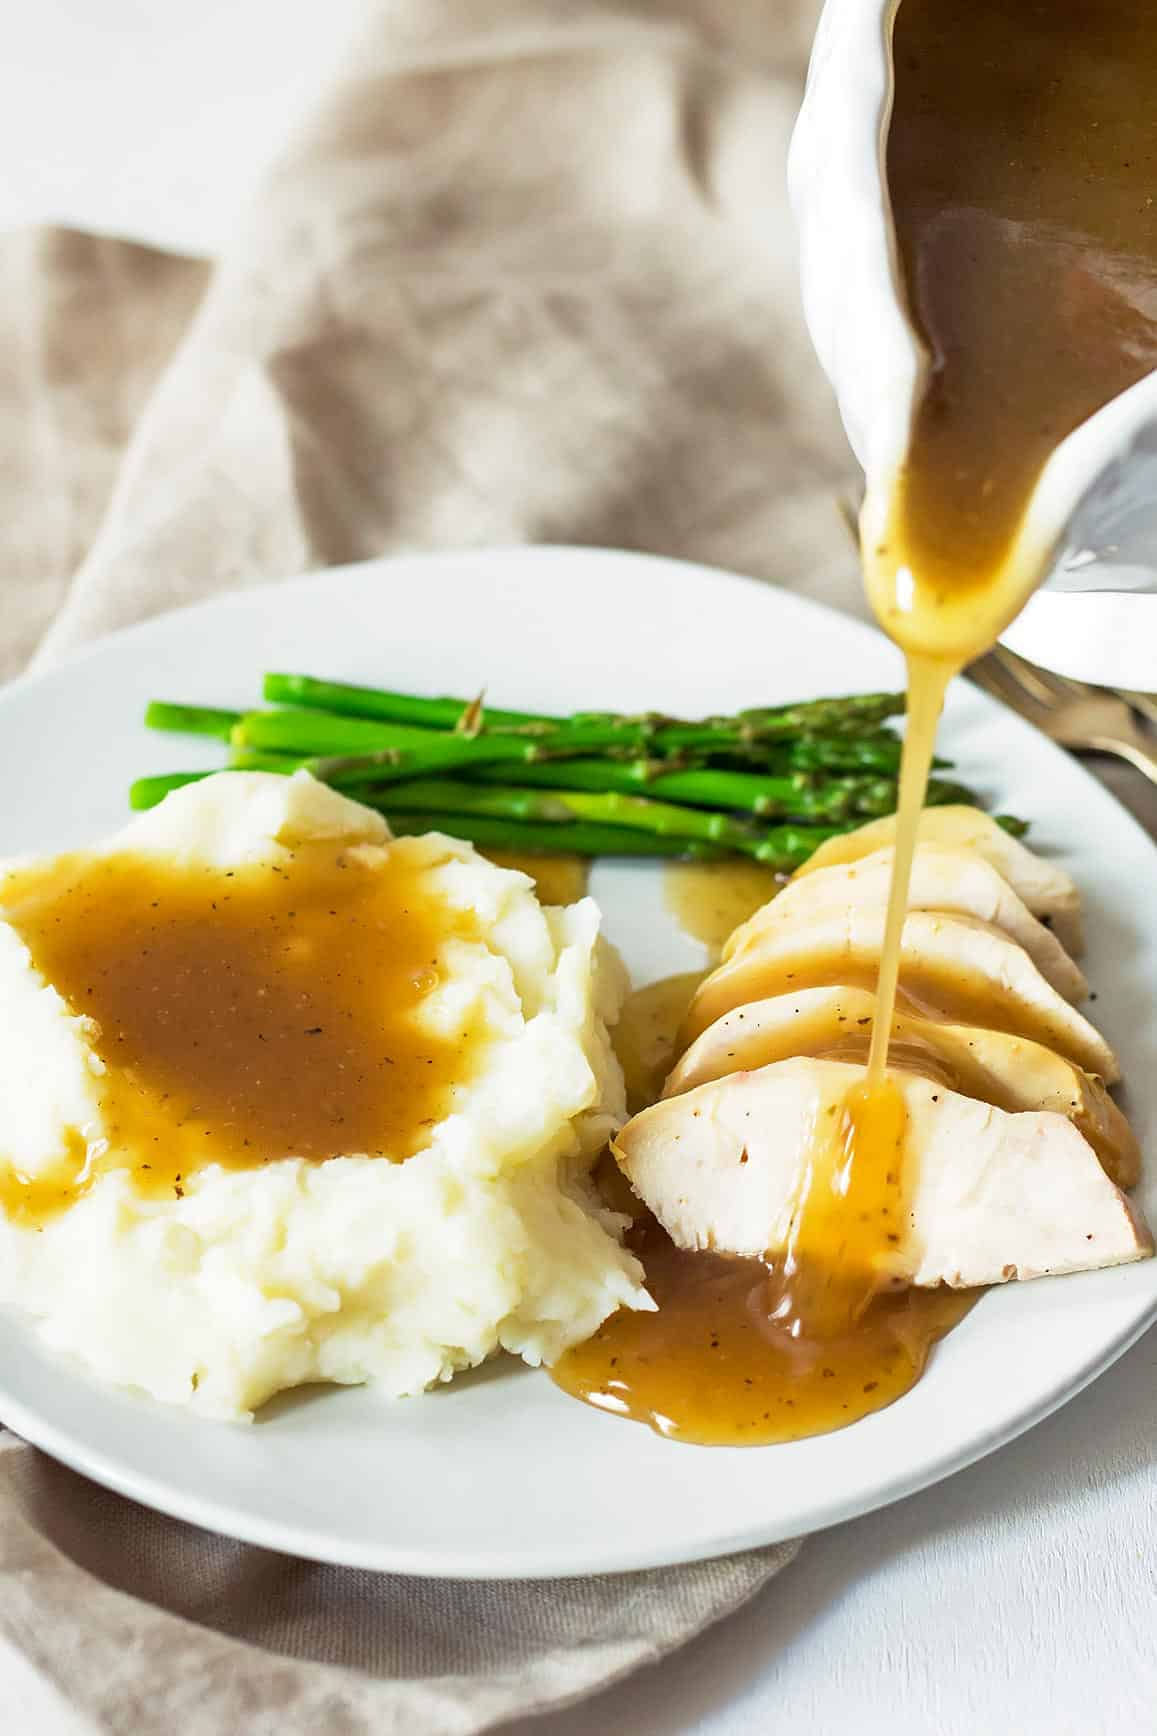 Gluten Free Gravy on Turkey